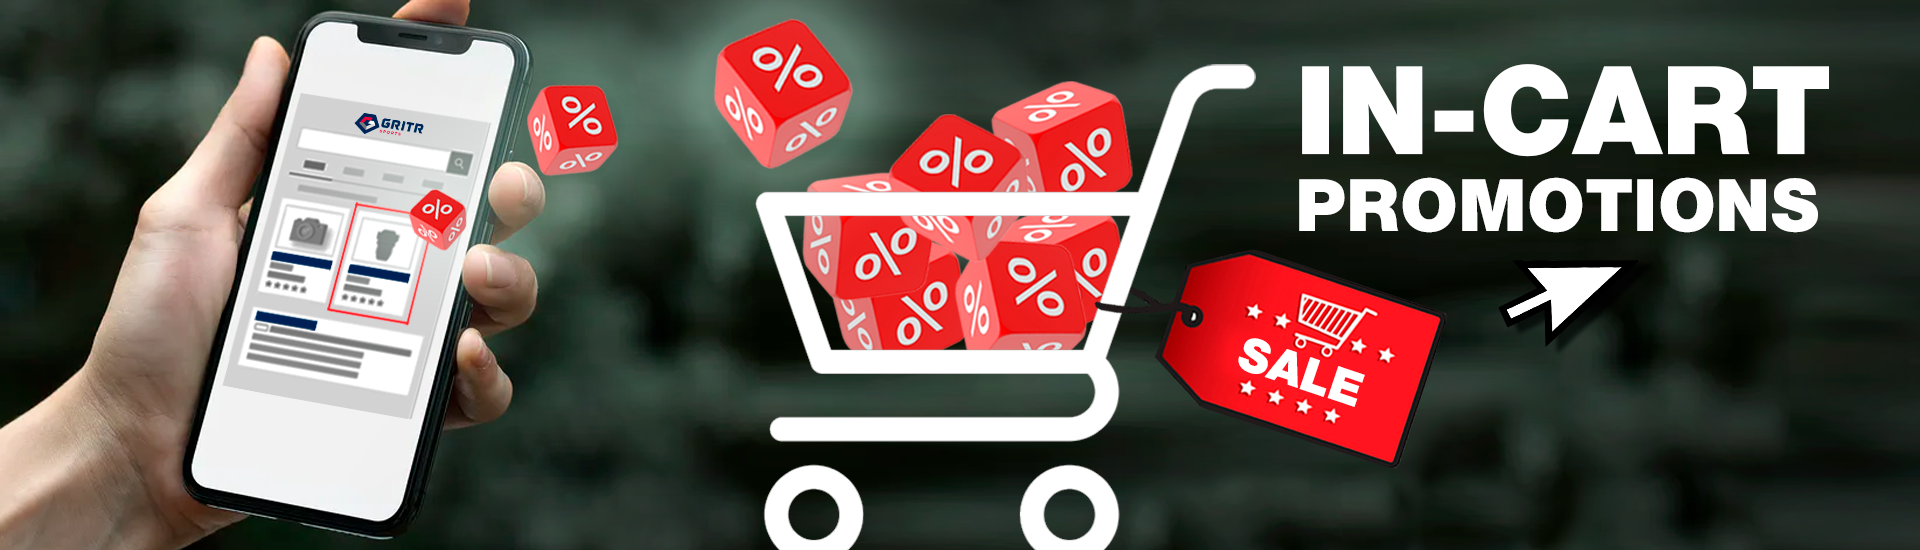 in-cart-promotions.png